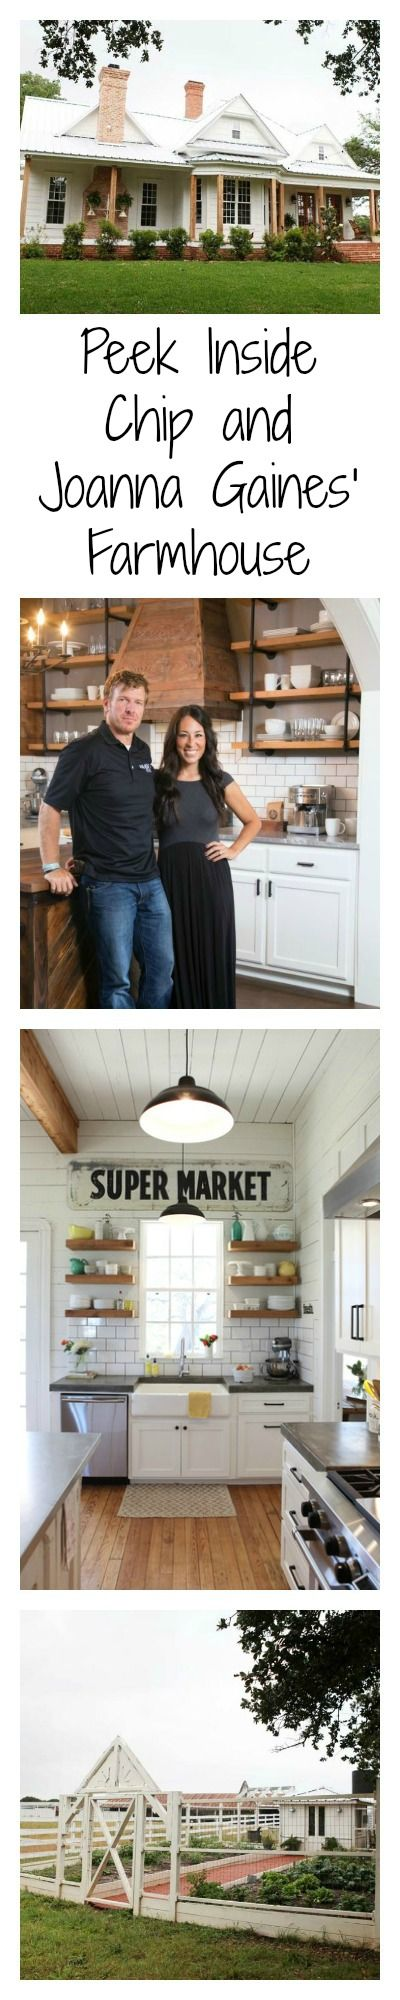 Love Chip and Joanna Gaines? Take a peek inside the farmhouse where the starts of HGTV's Fixer Upper reside.